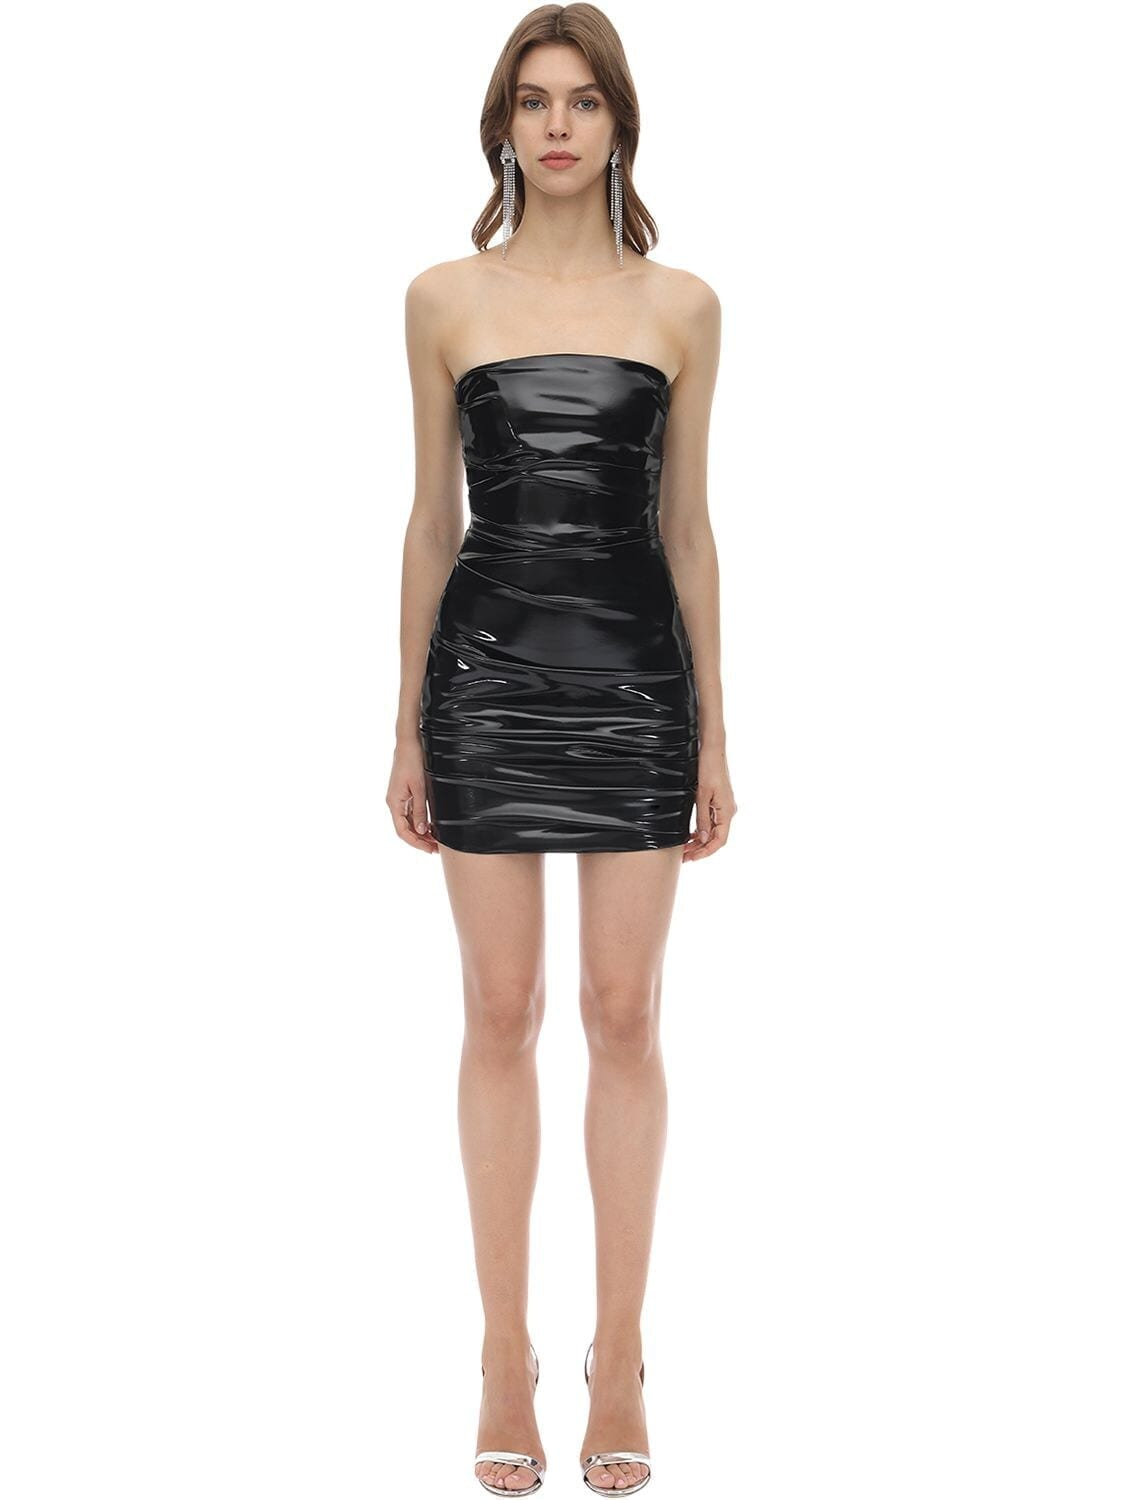 ALEX PERRY Strapless Techno Vinyl Mini Dress